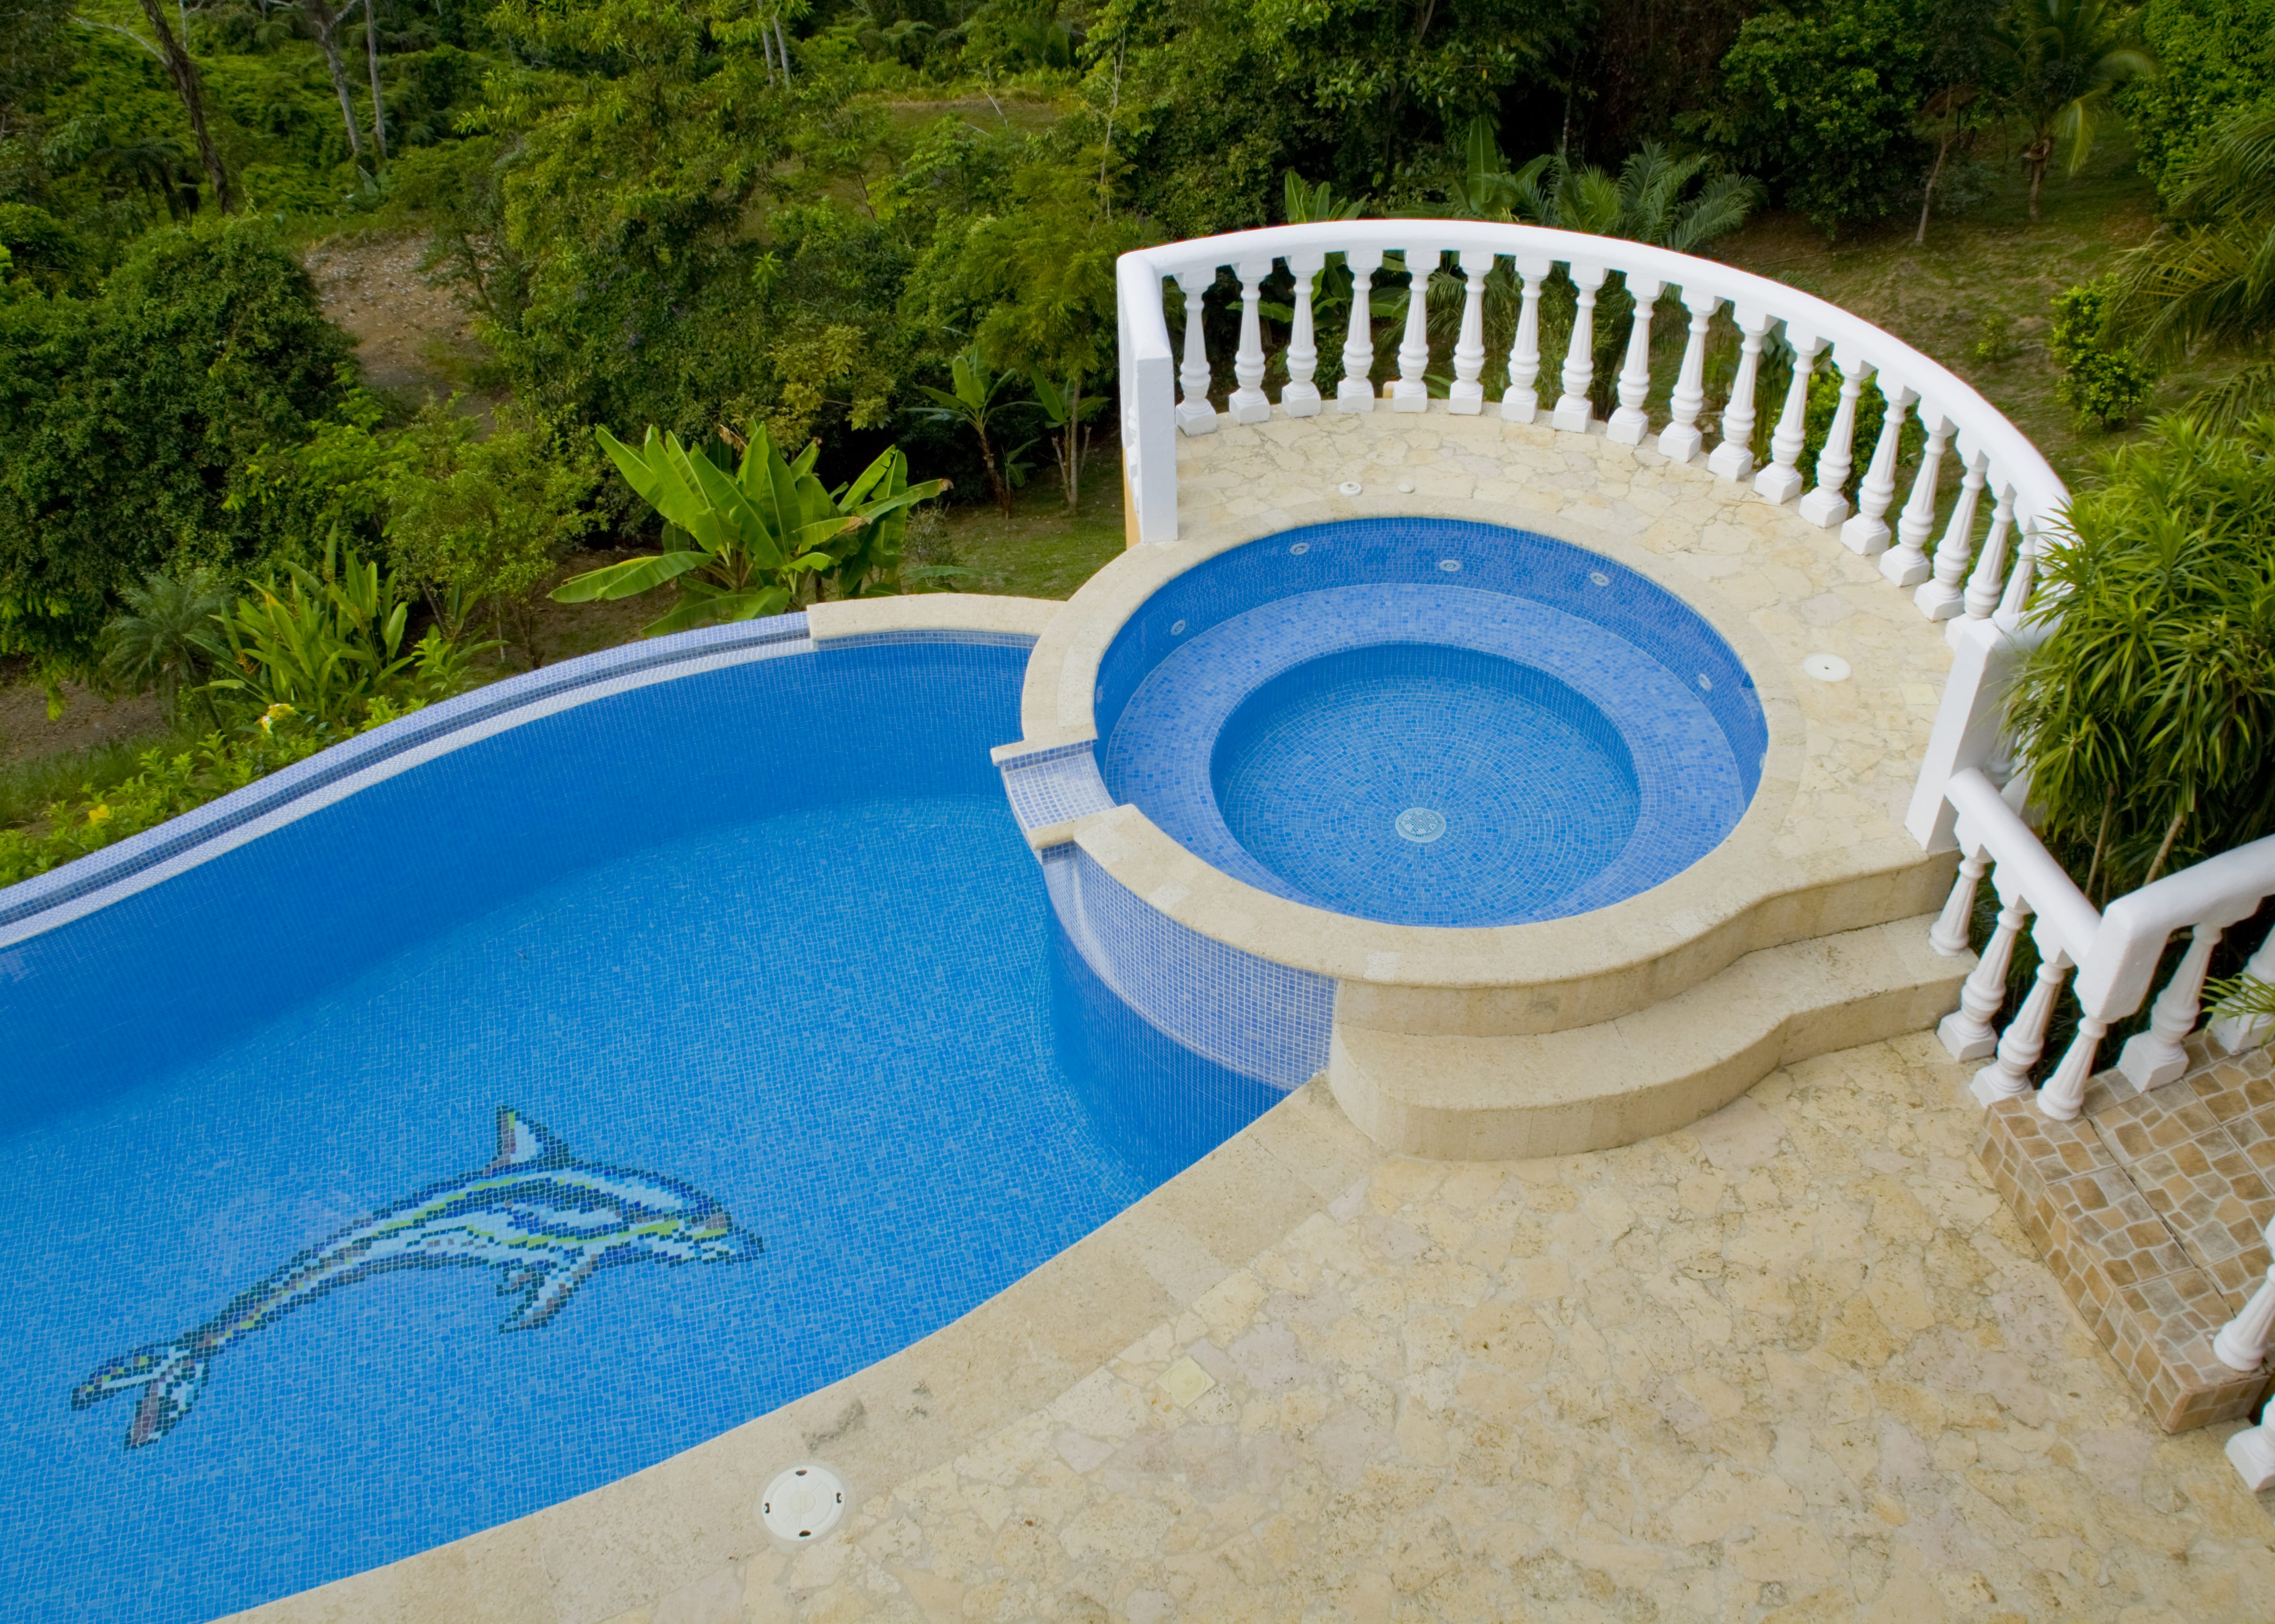 1.3 ACRES - 5 Bedroom Home With Pool, Caretaker House, And Whales Tale Ocean View!!!